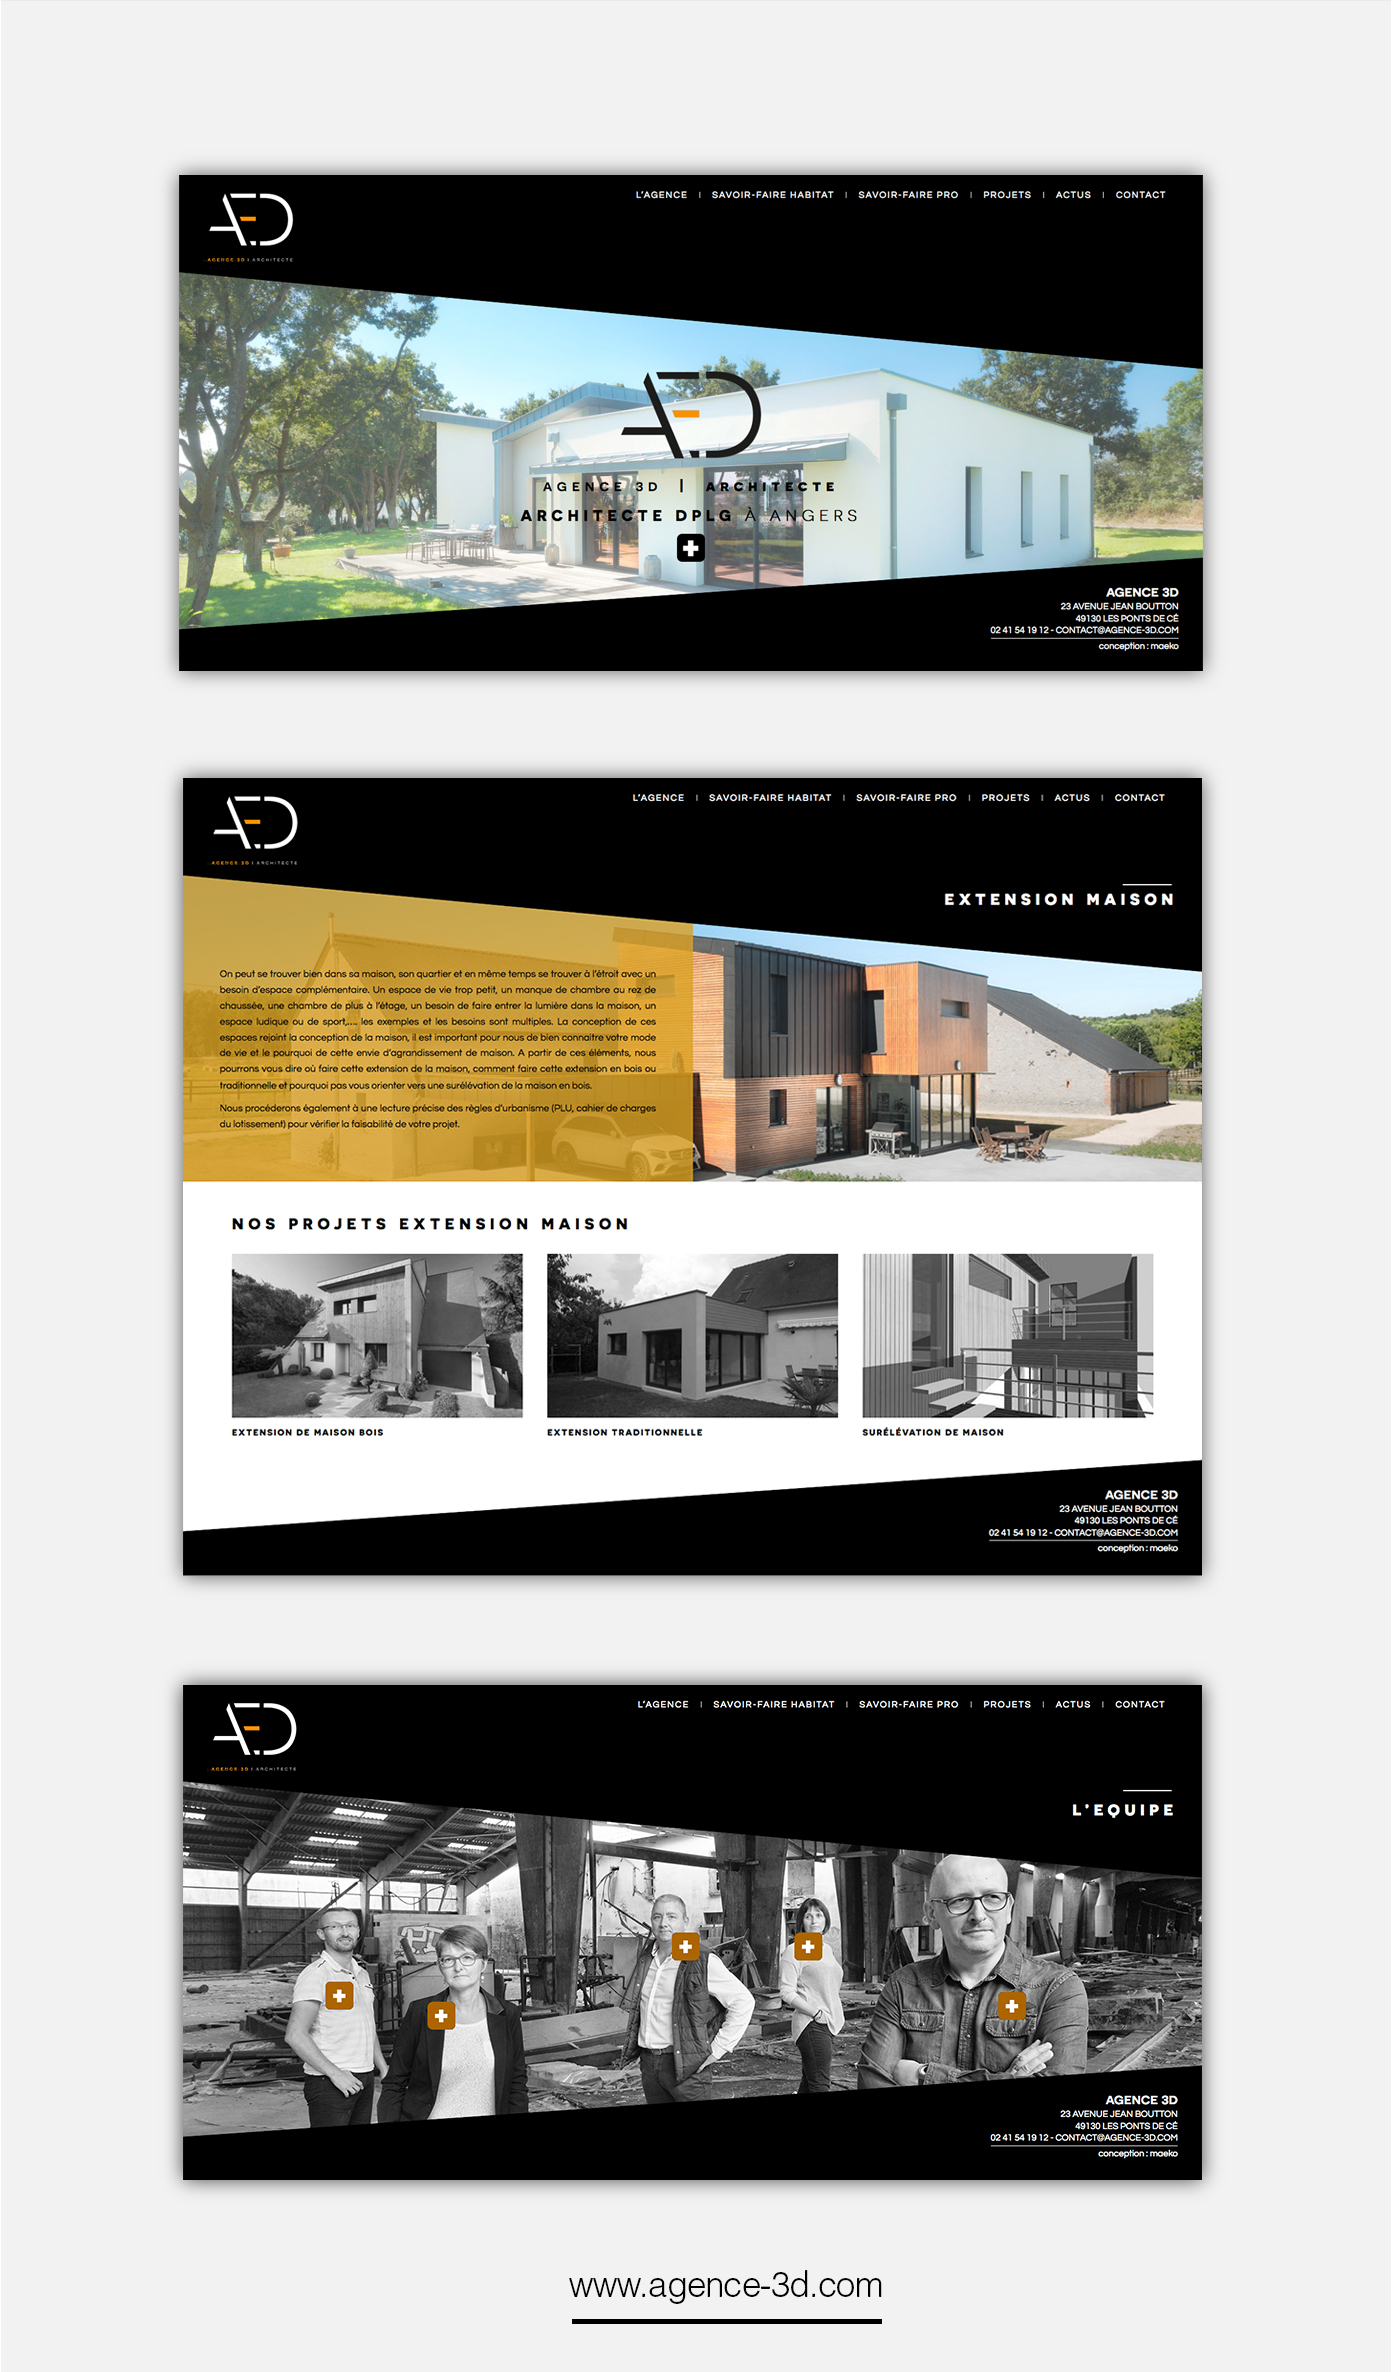 Site Agence 3D